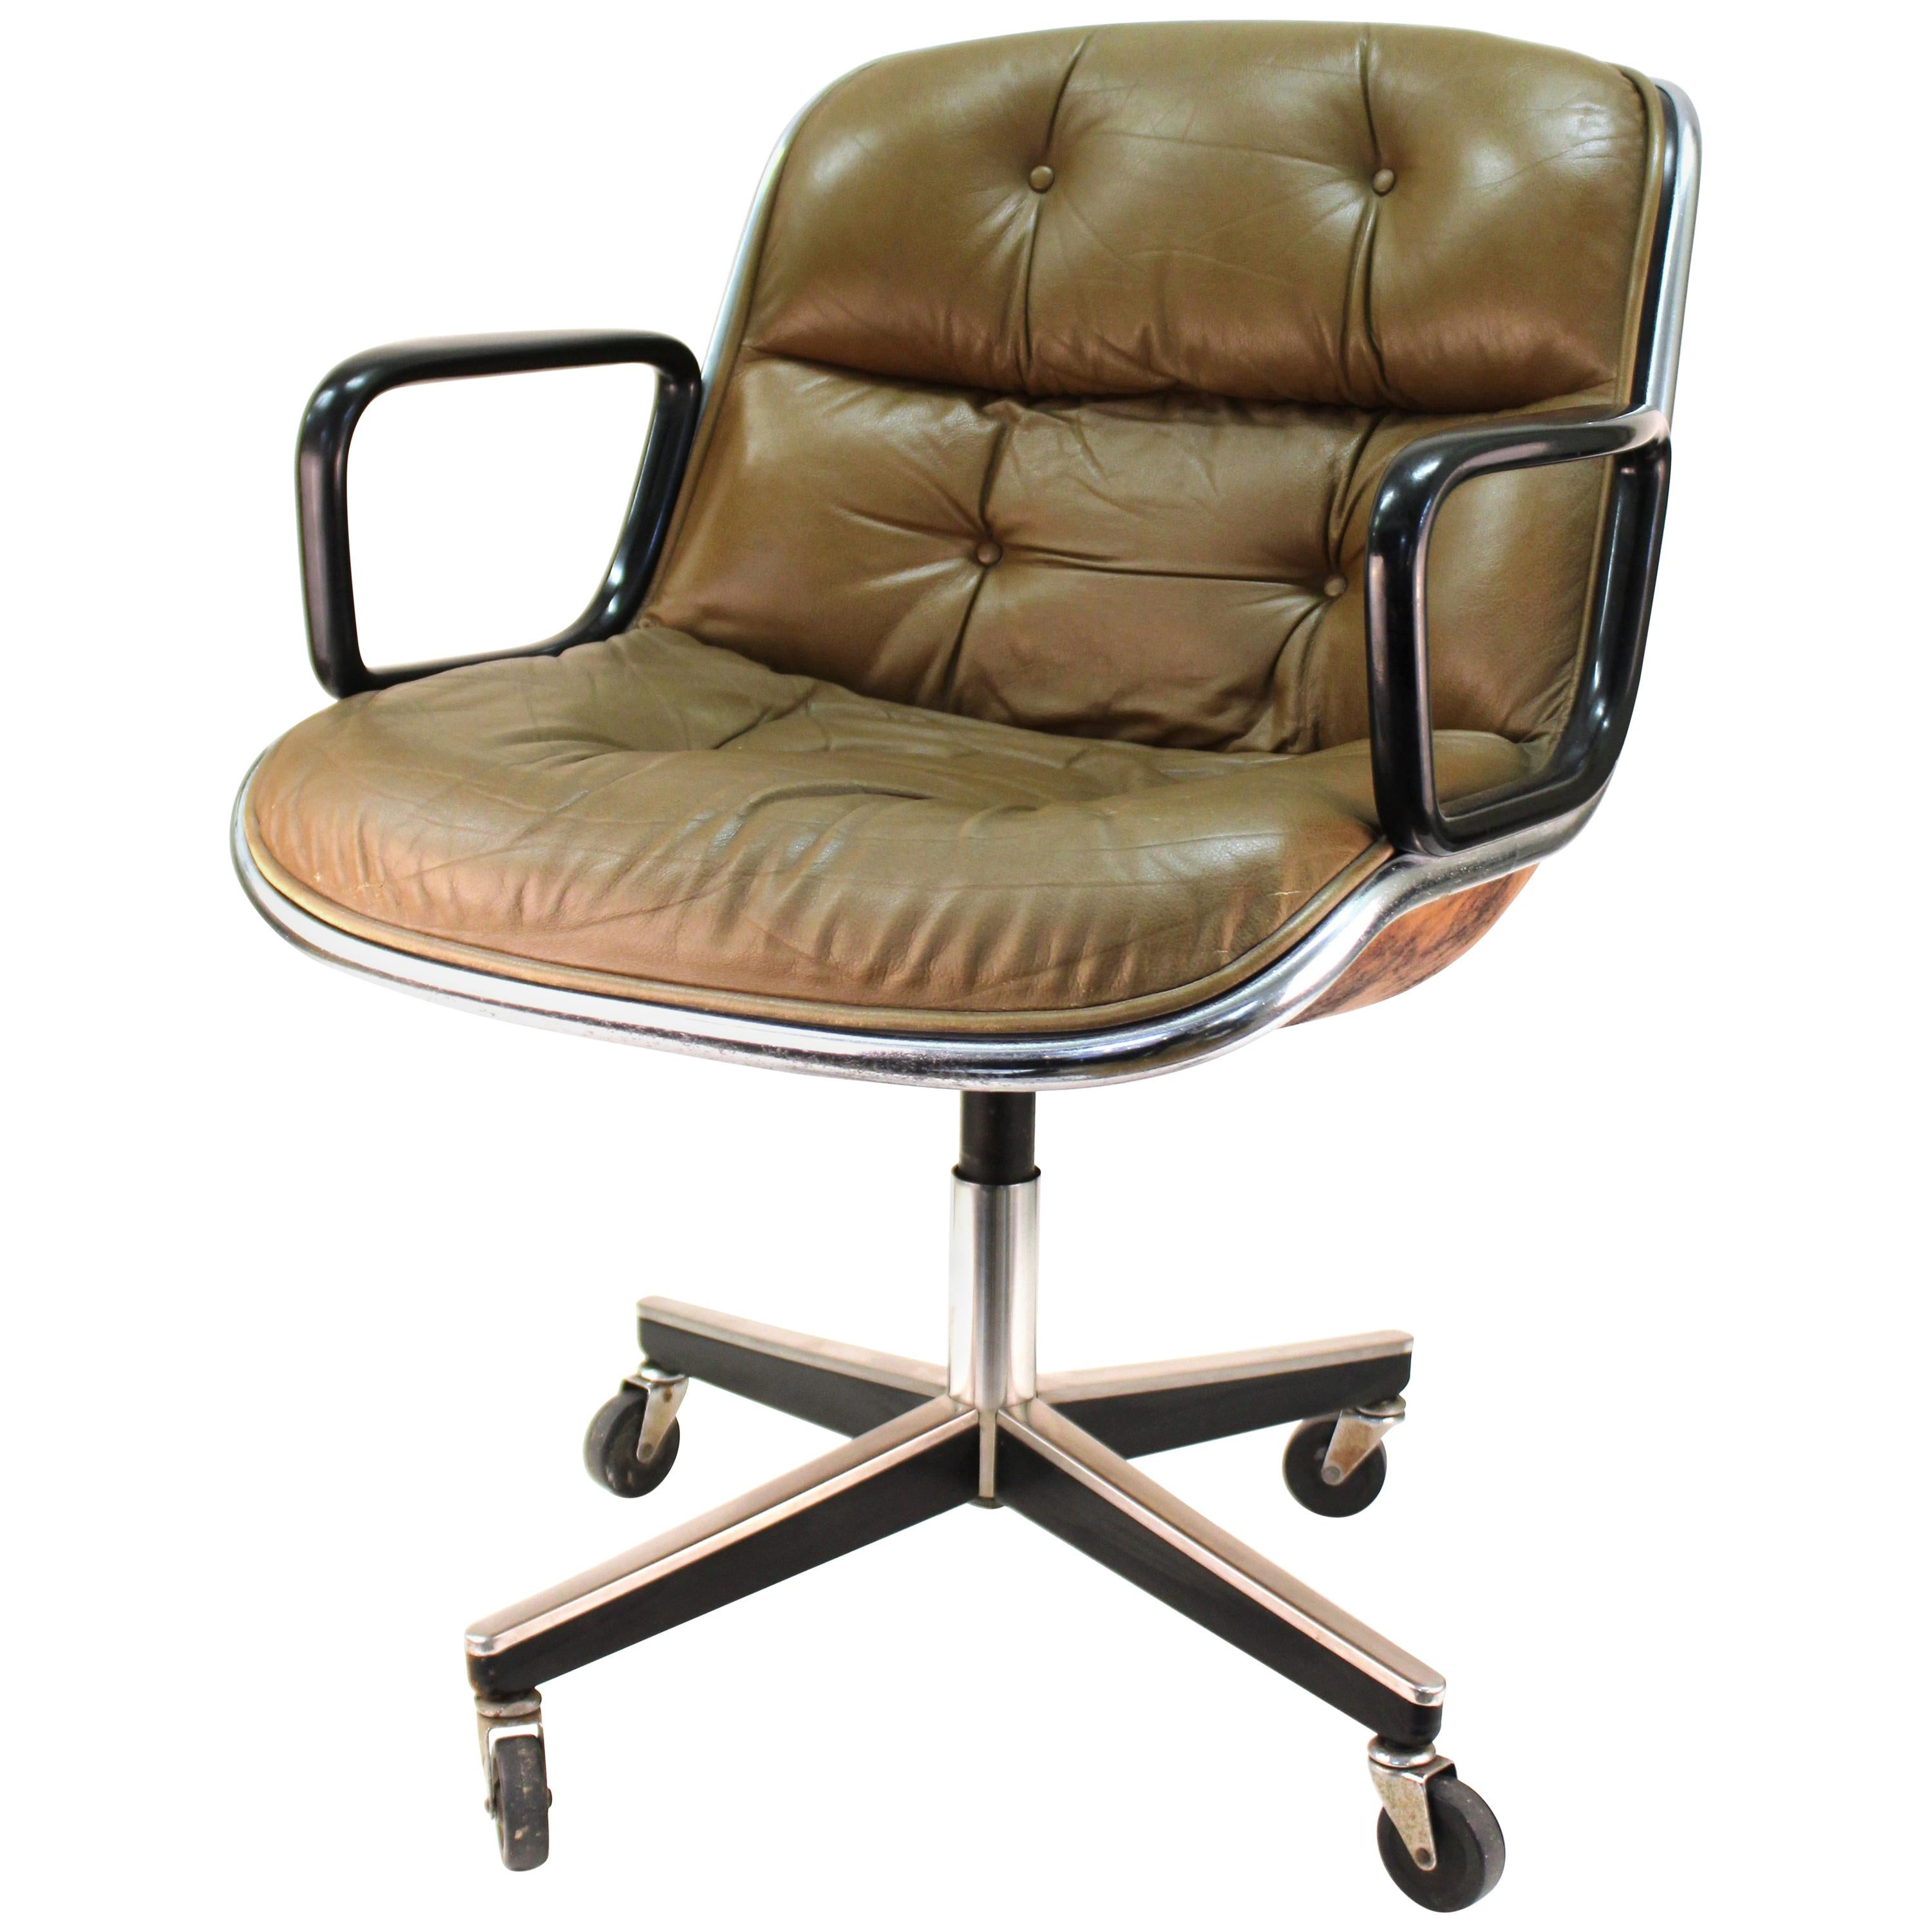 Knoll office chairs and desk chairs 103 for sale at 1stdibs